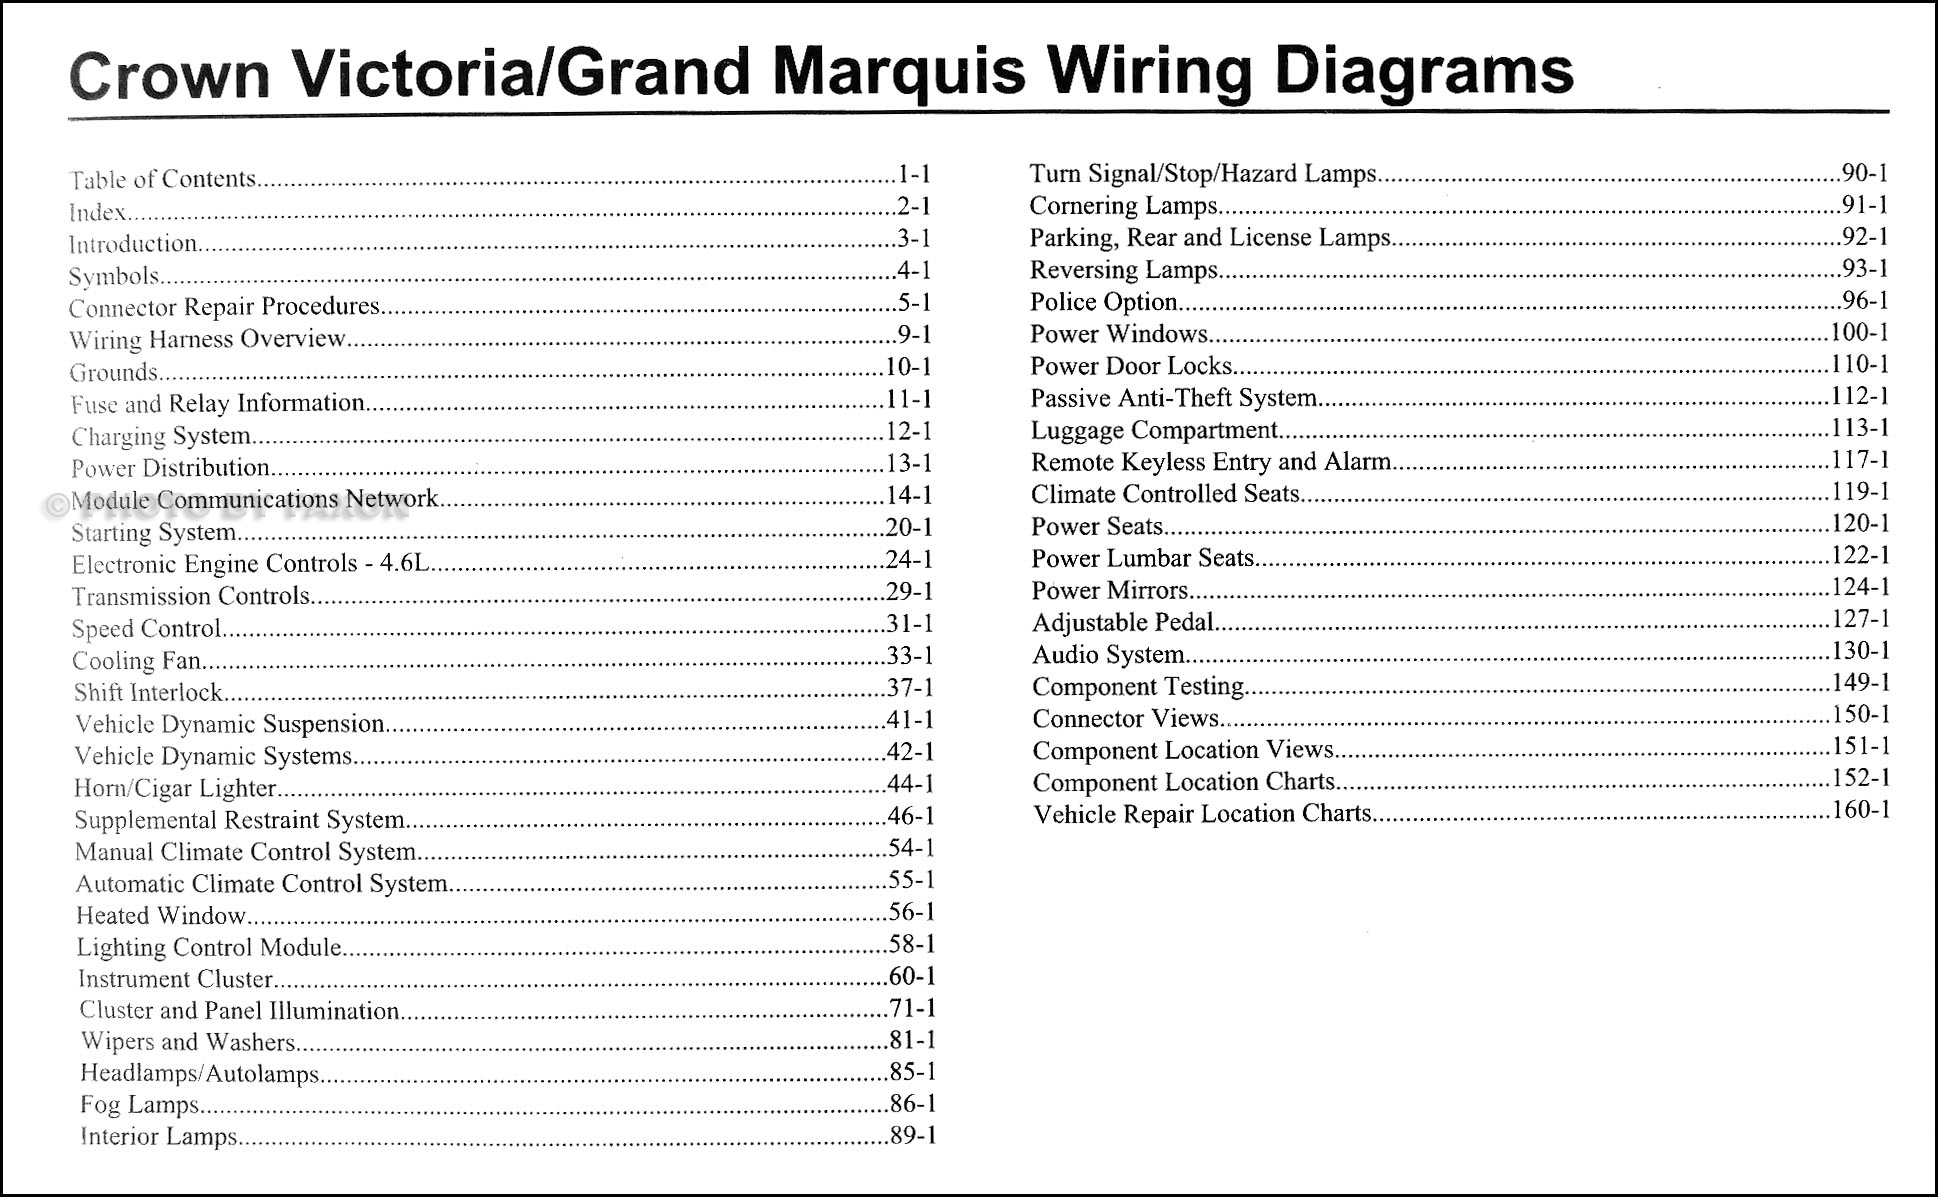 2009FordCrownVictoriaOWD TOC 2009 crown victoria & grand marquis original wiring diagram manual 2005 mercury grand marquis stereo wiring diagram at eliteediting.co